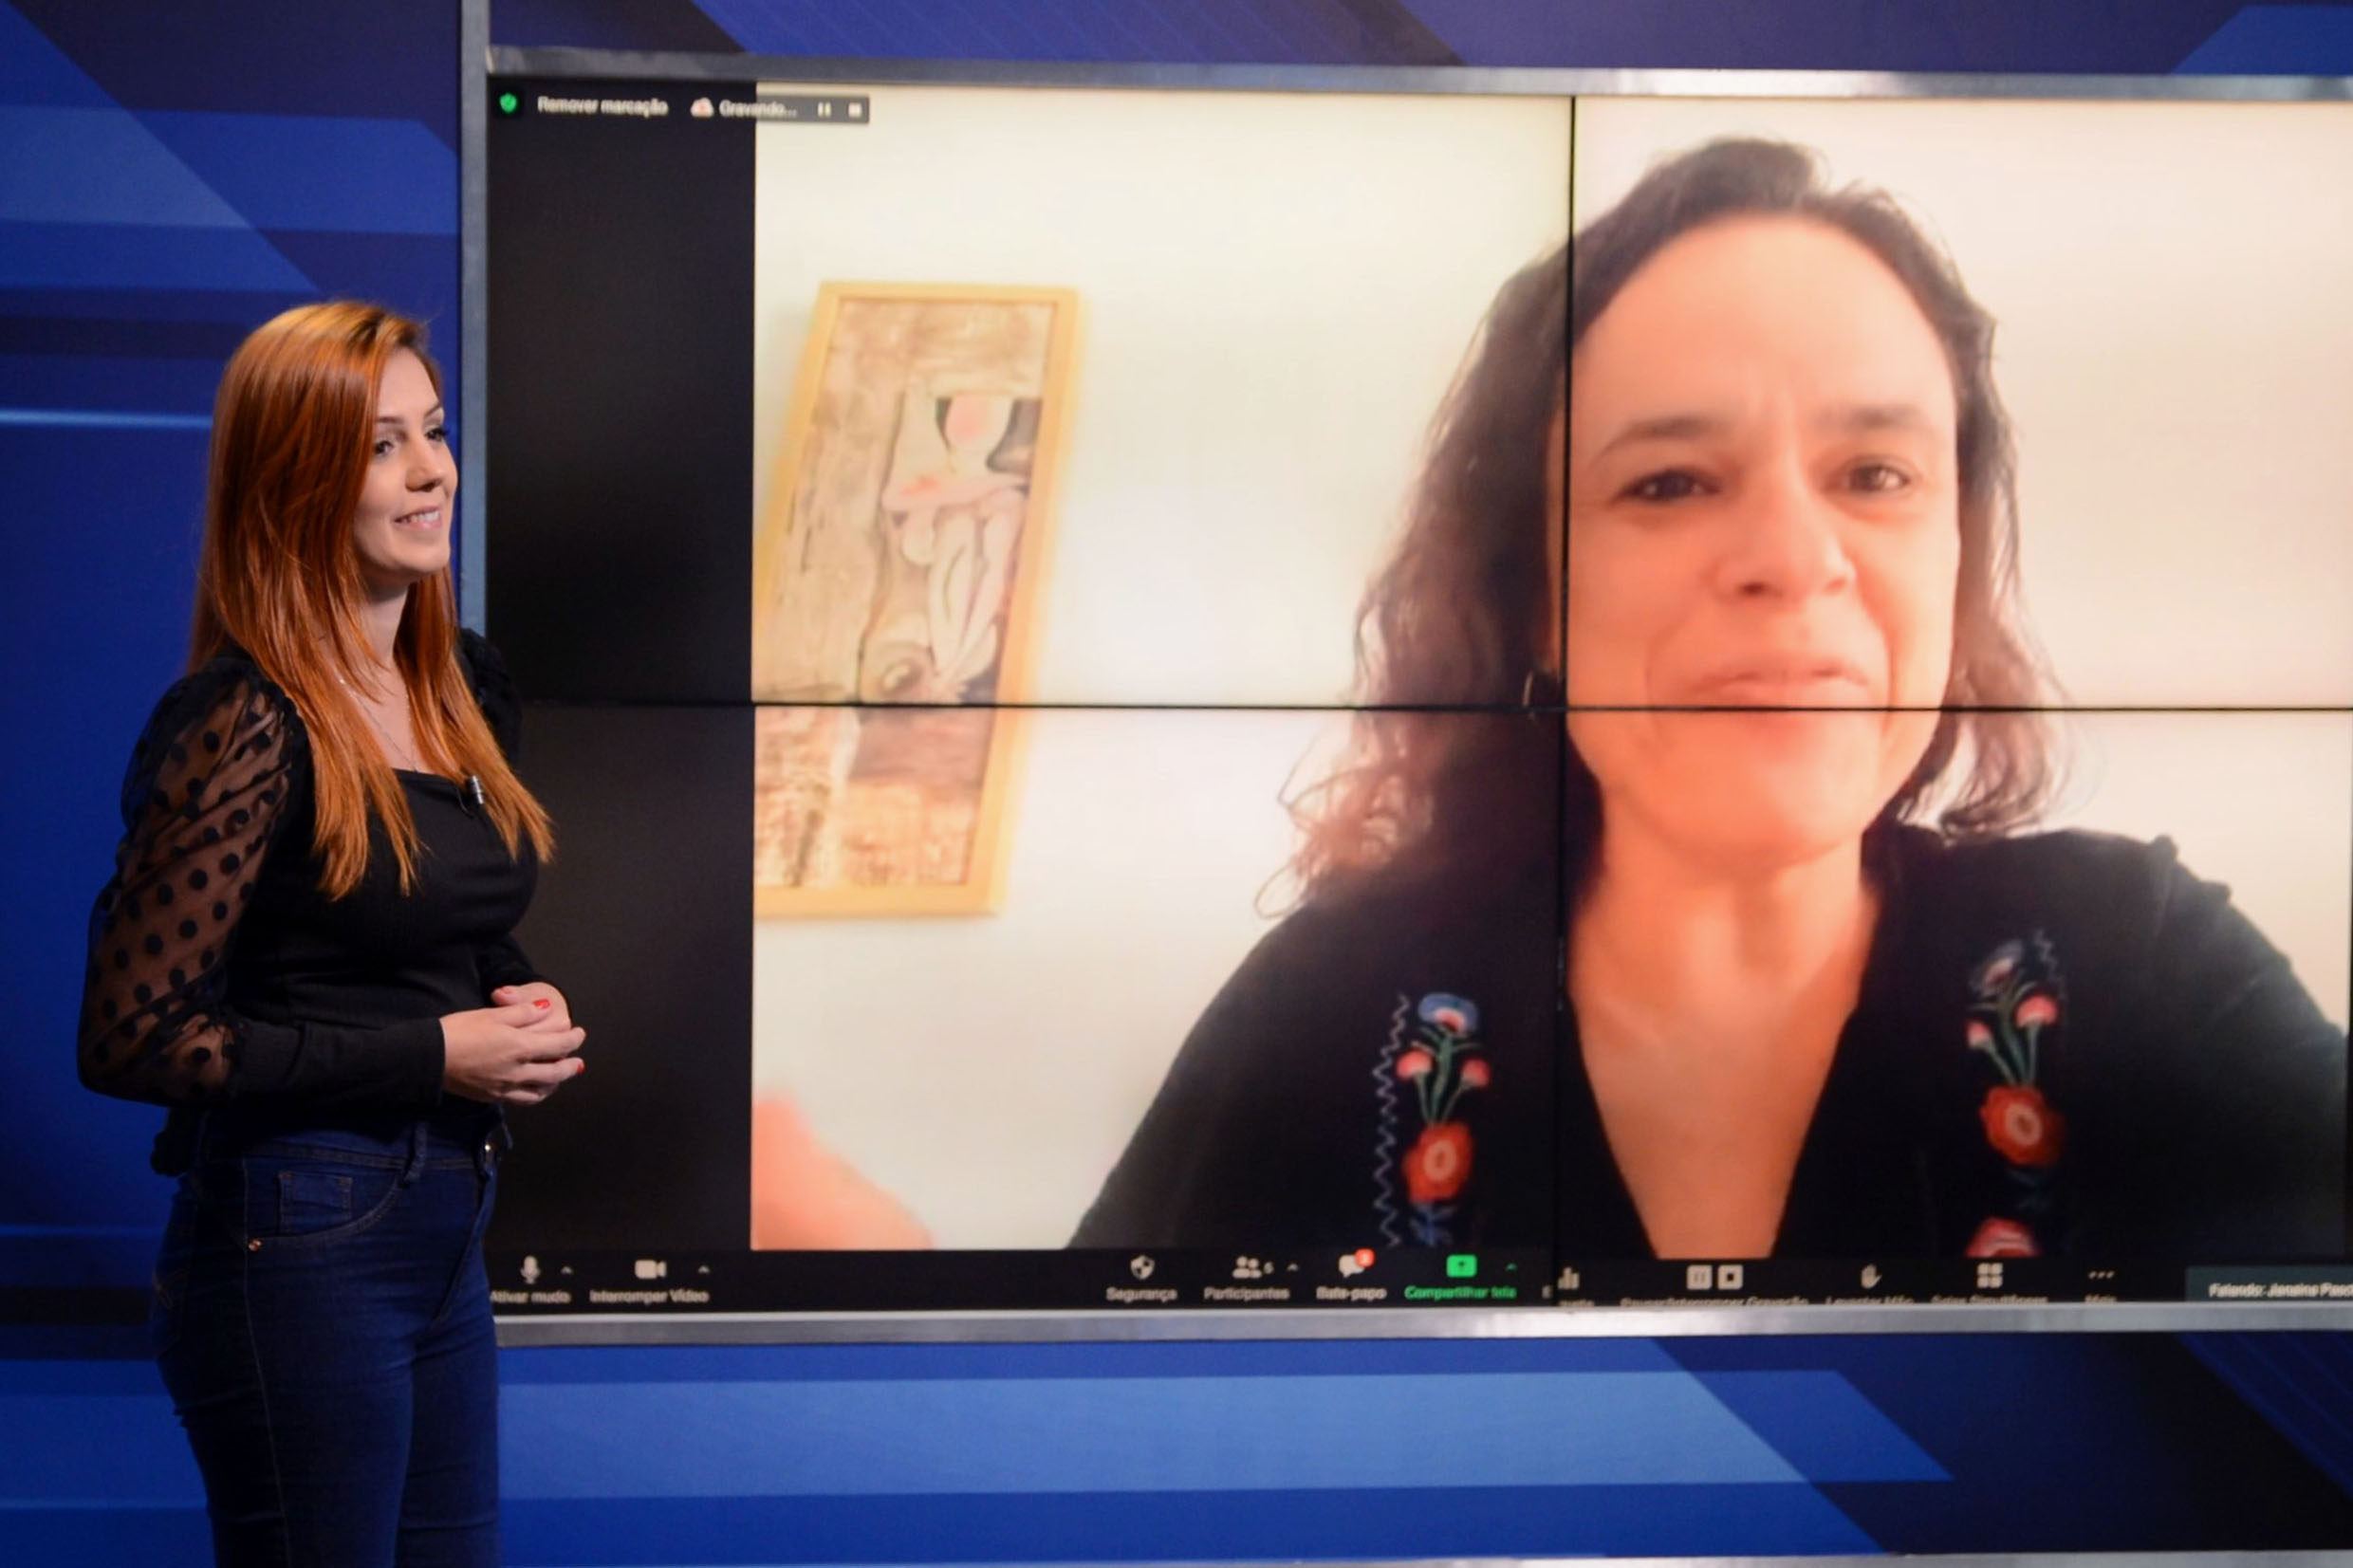 Janaina Paschoal na Tribuna Virtual<a style='float:right' href='https://www3.al.sp.gov.br/repositorio/noticia/N-05-2021/fg265992.jpg' target=_blank><img src='/_img/material-file-download-white.png' width='14px' alt='Clique para baixar a imagem'></a>